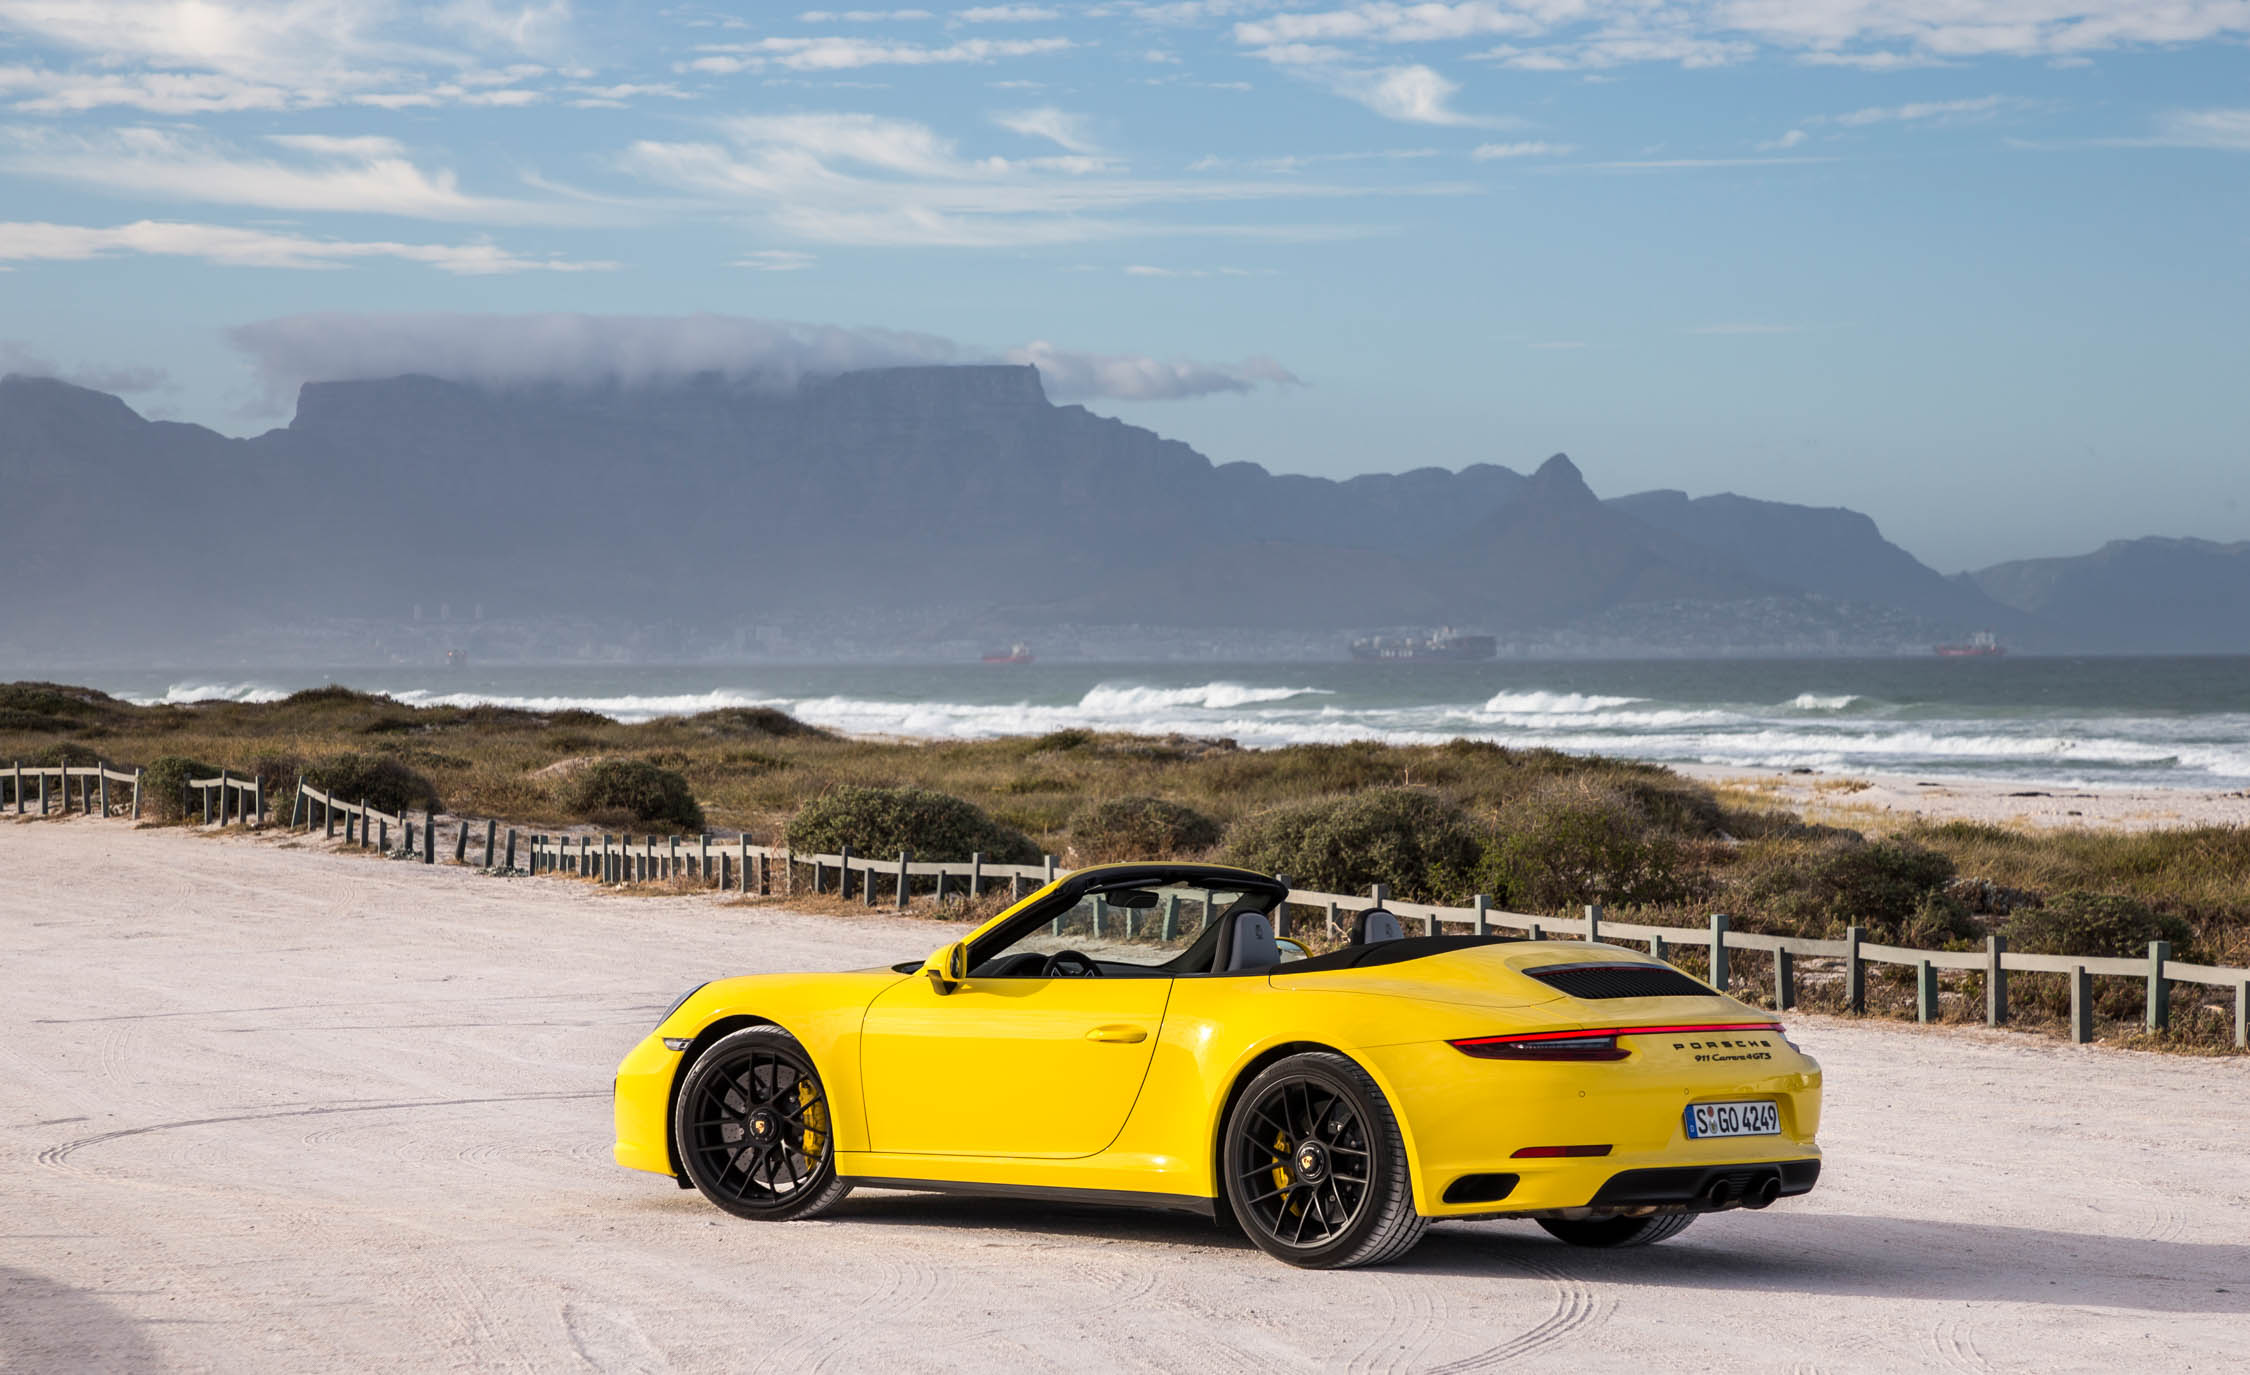 2017 Porsche 911 Carrera 4 GTS Cabriolet Exterior Side And Rear (Photo 4 of 97)